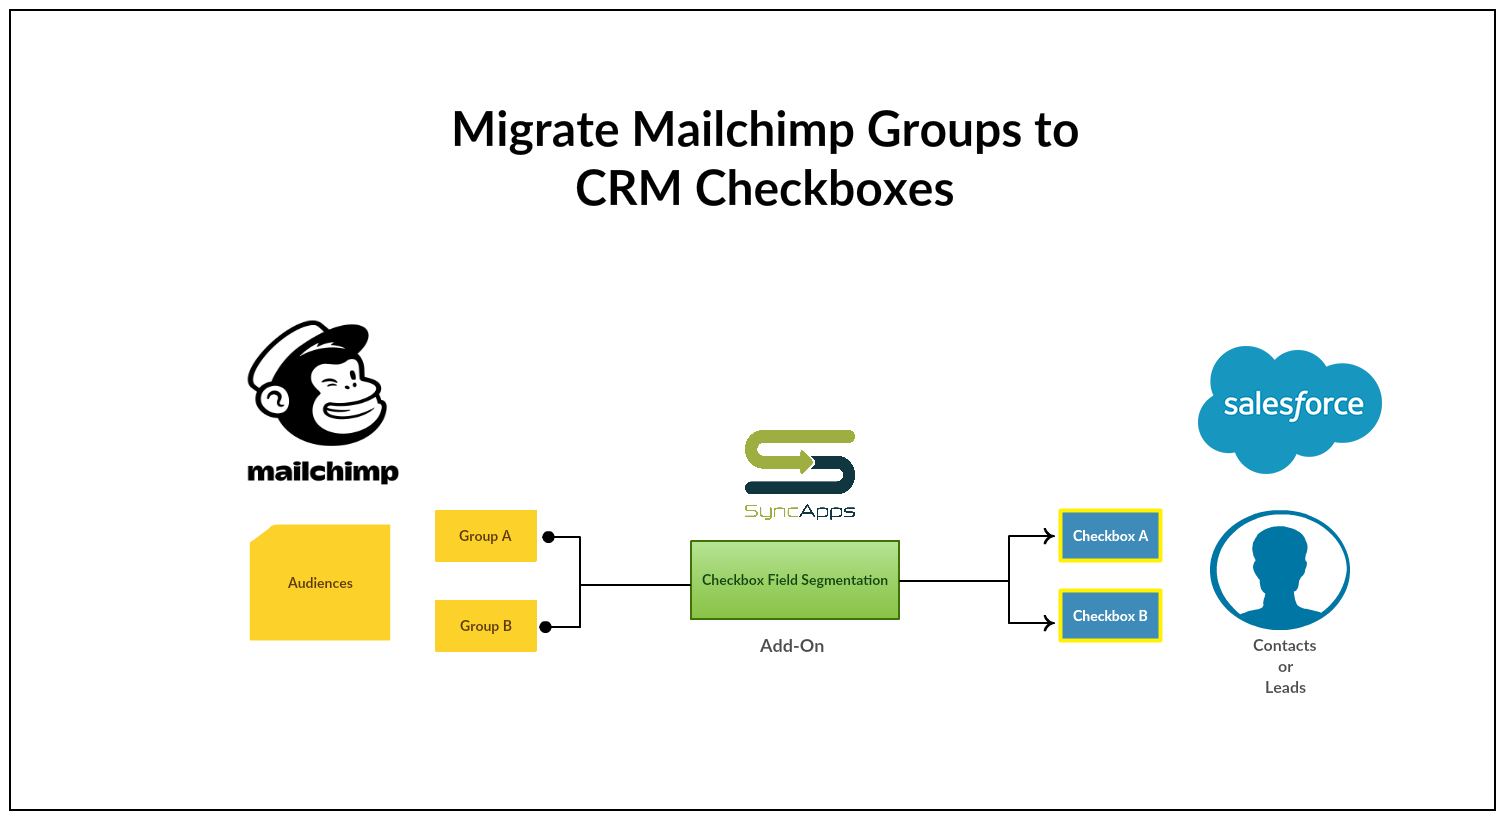 Migrate_Mailchimp_Groups_to_CRM_Checkboxes.png